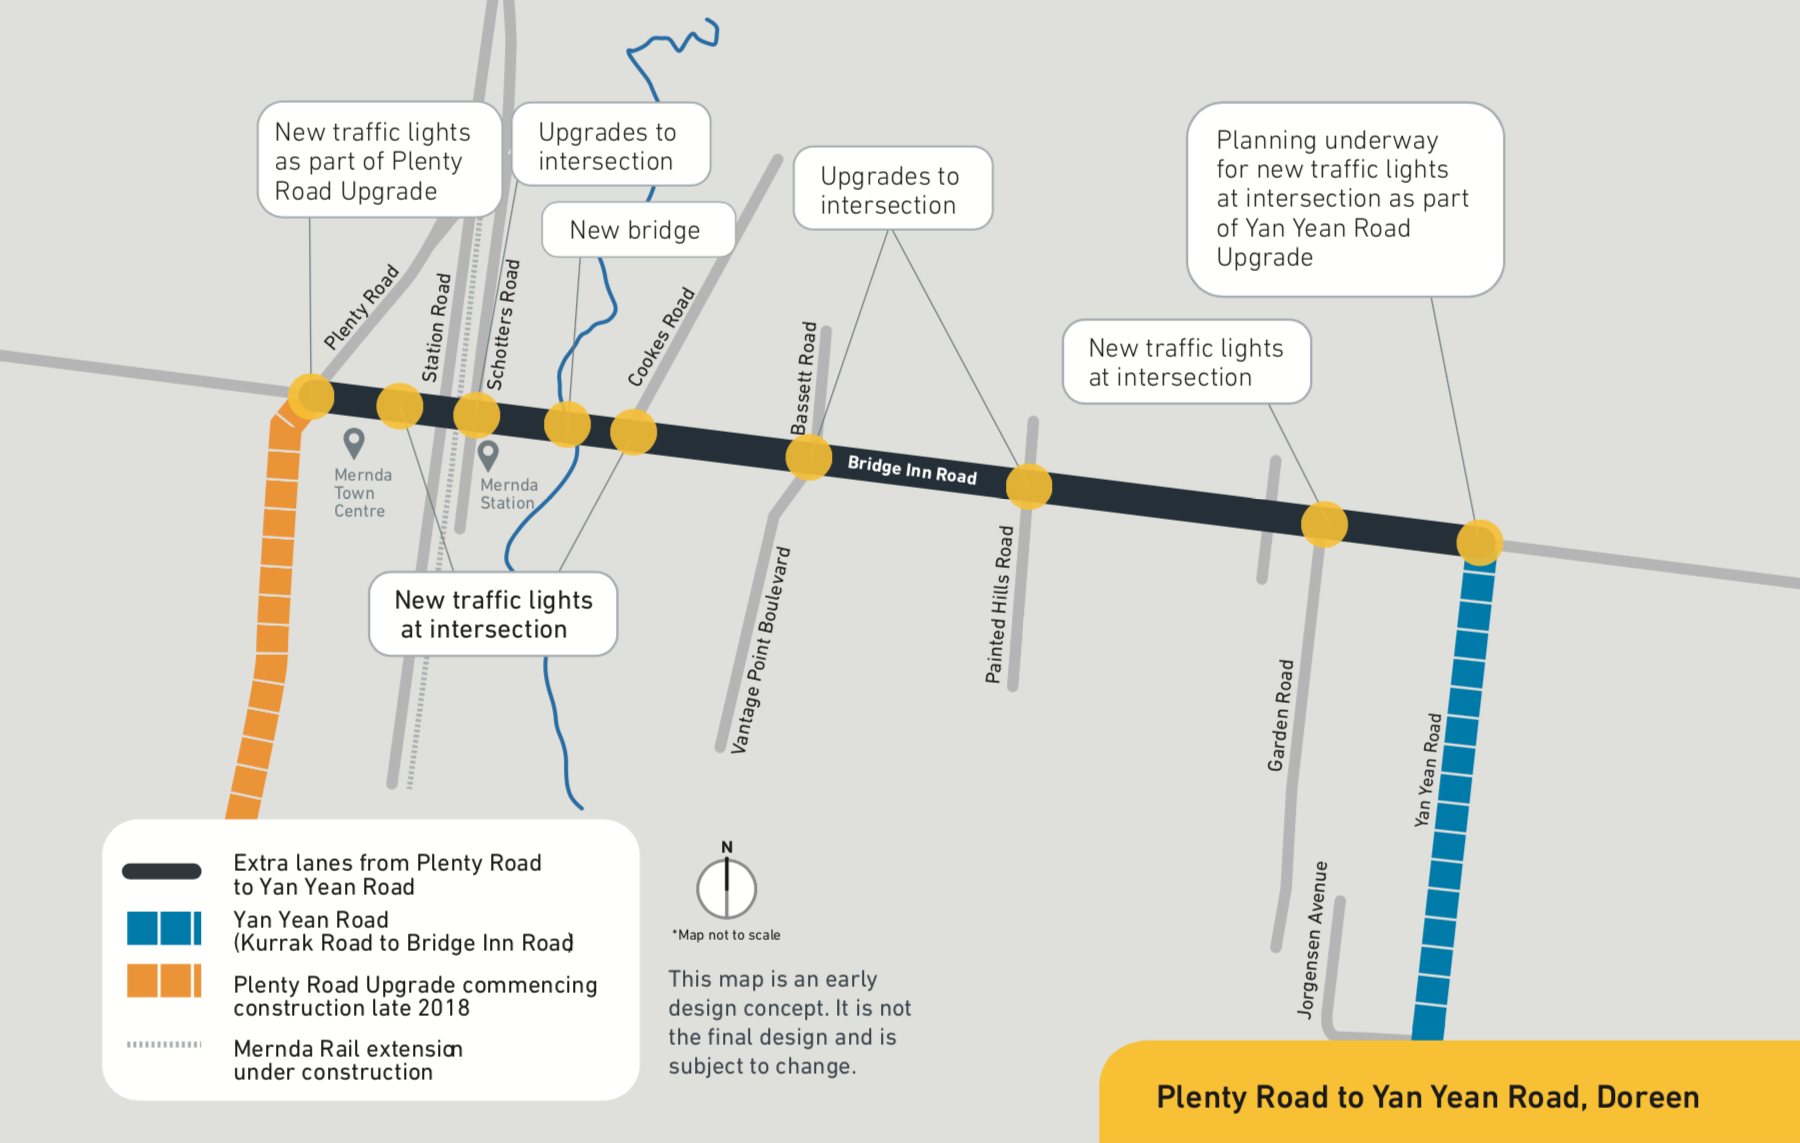 As part of the upgrade, we plan to: add an extra lane in each direction between Plenty Road and Yan Yean Road install new and upgrade existing intersections build a new bridge over Plenty River and upgrade the existing bridge build a walking and cycling path install safety barriers along the road.